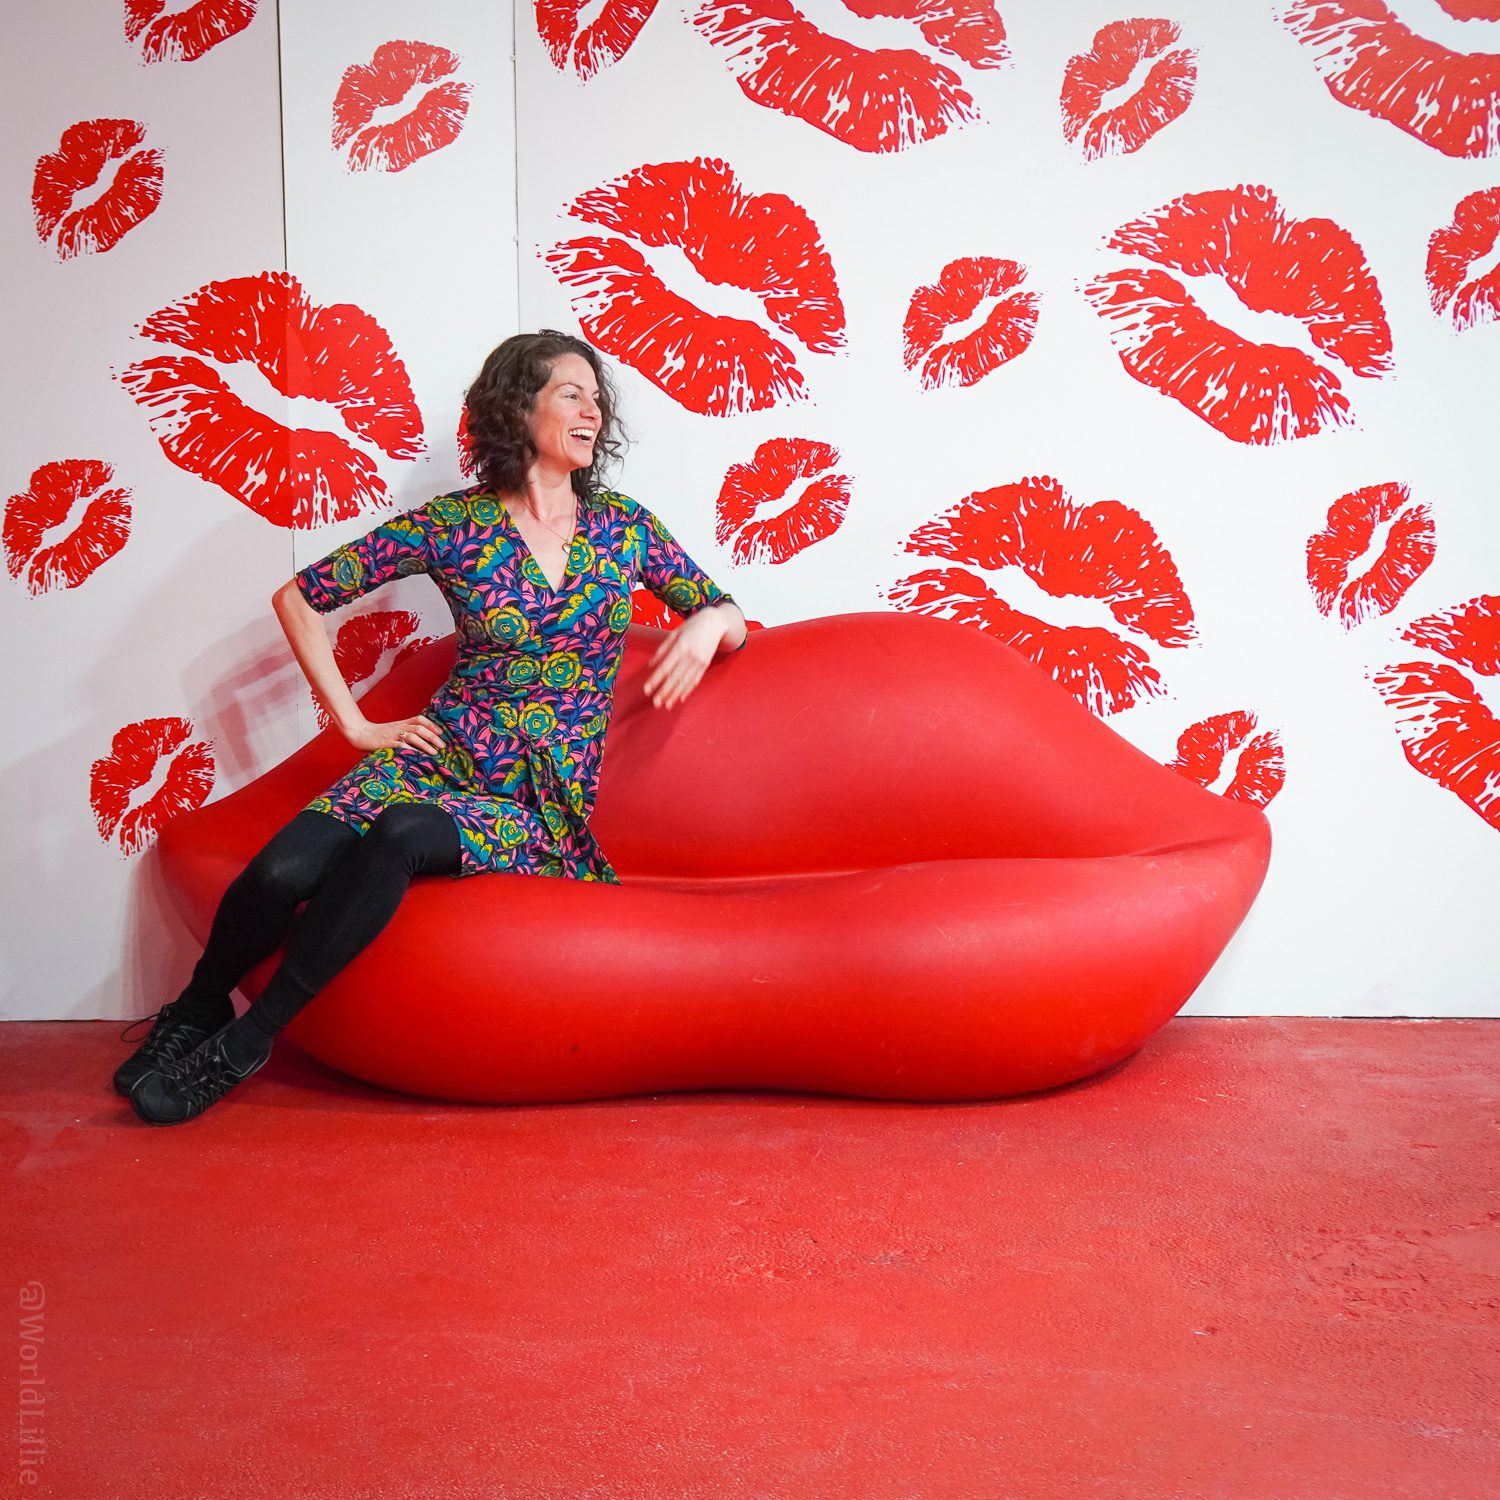 Happy Place: Sitting on a giant red lips couch with lipstick kisses on the wall.